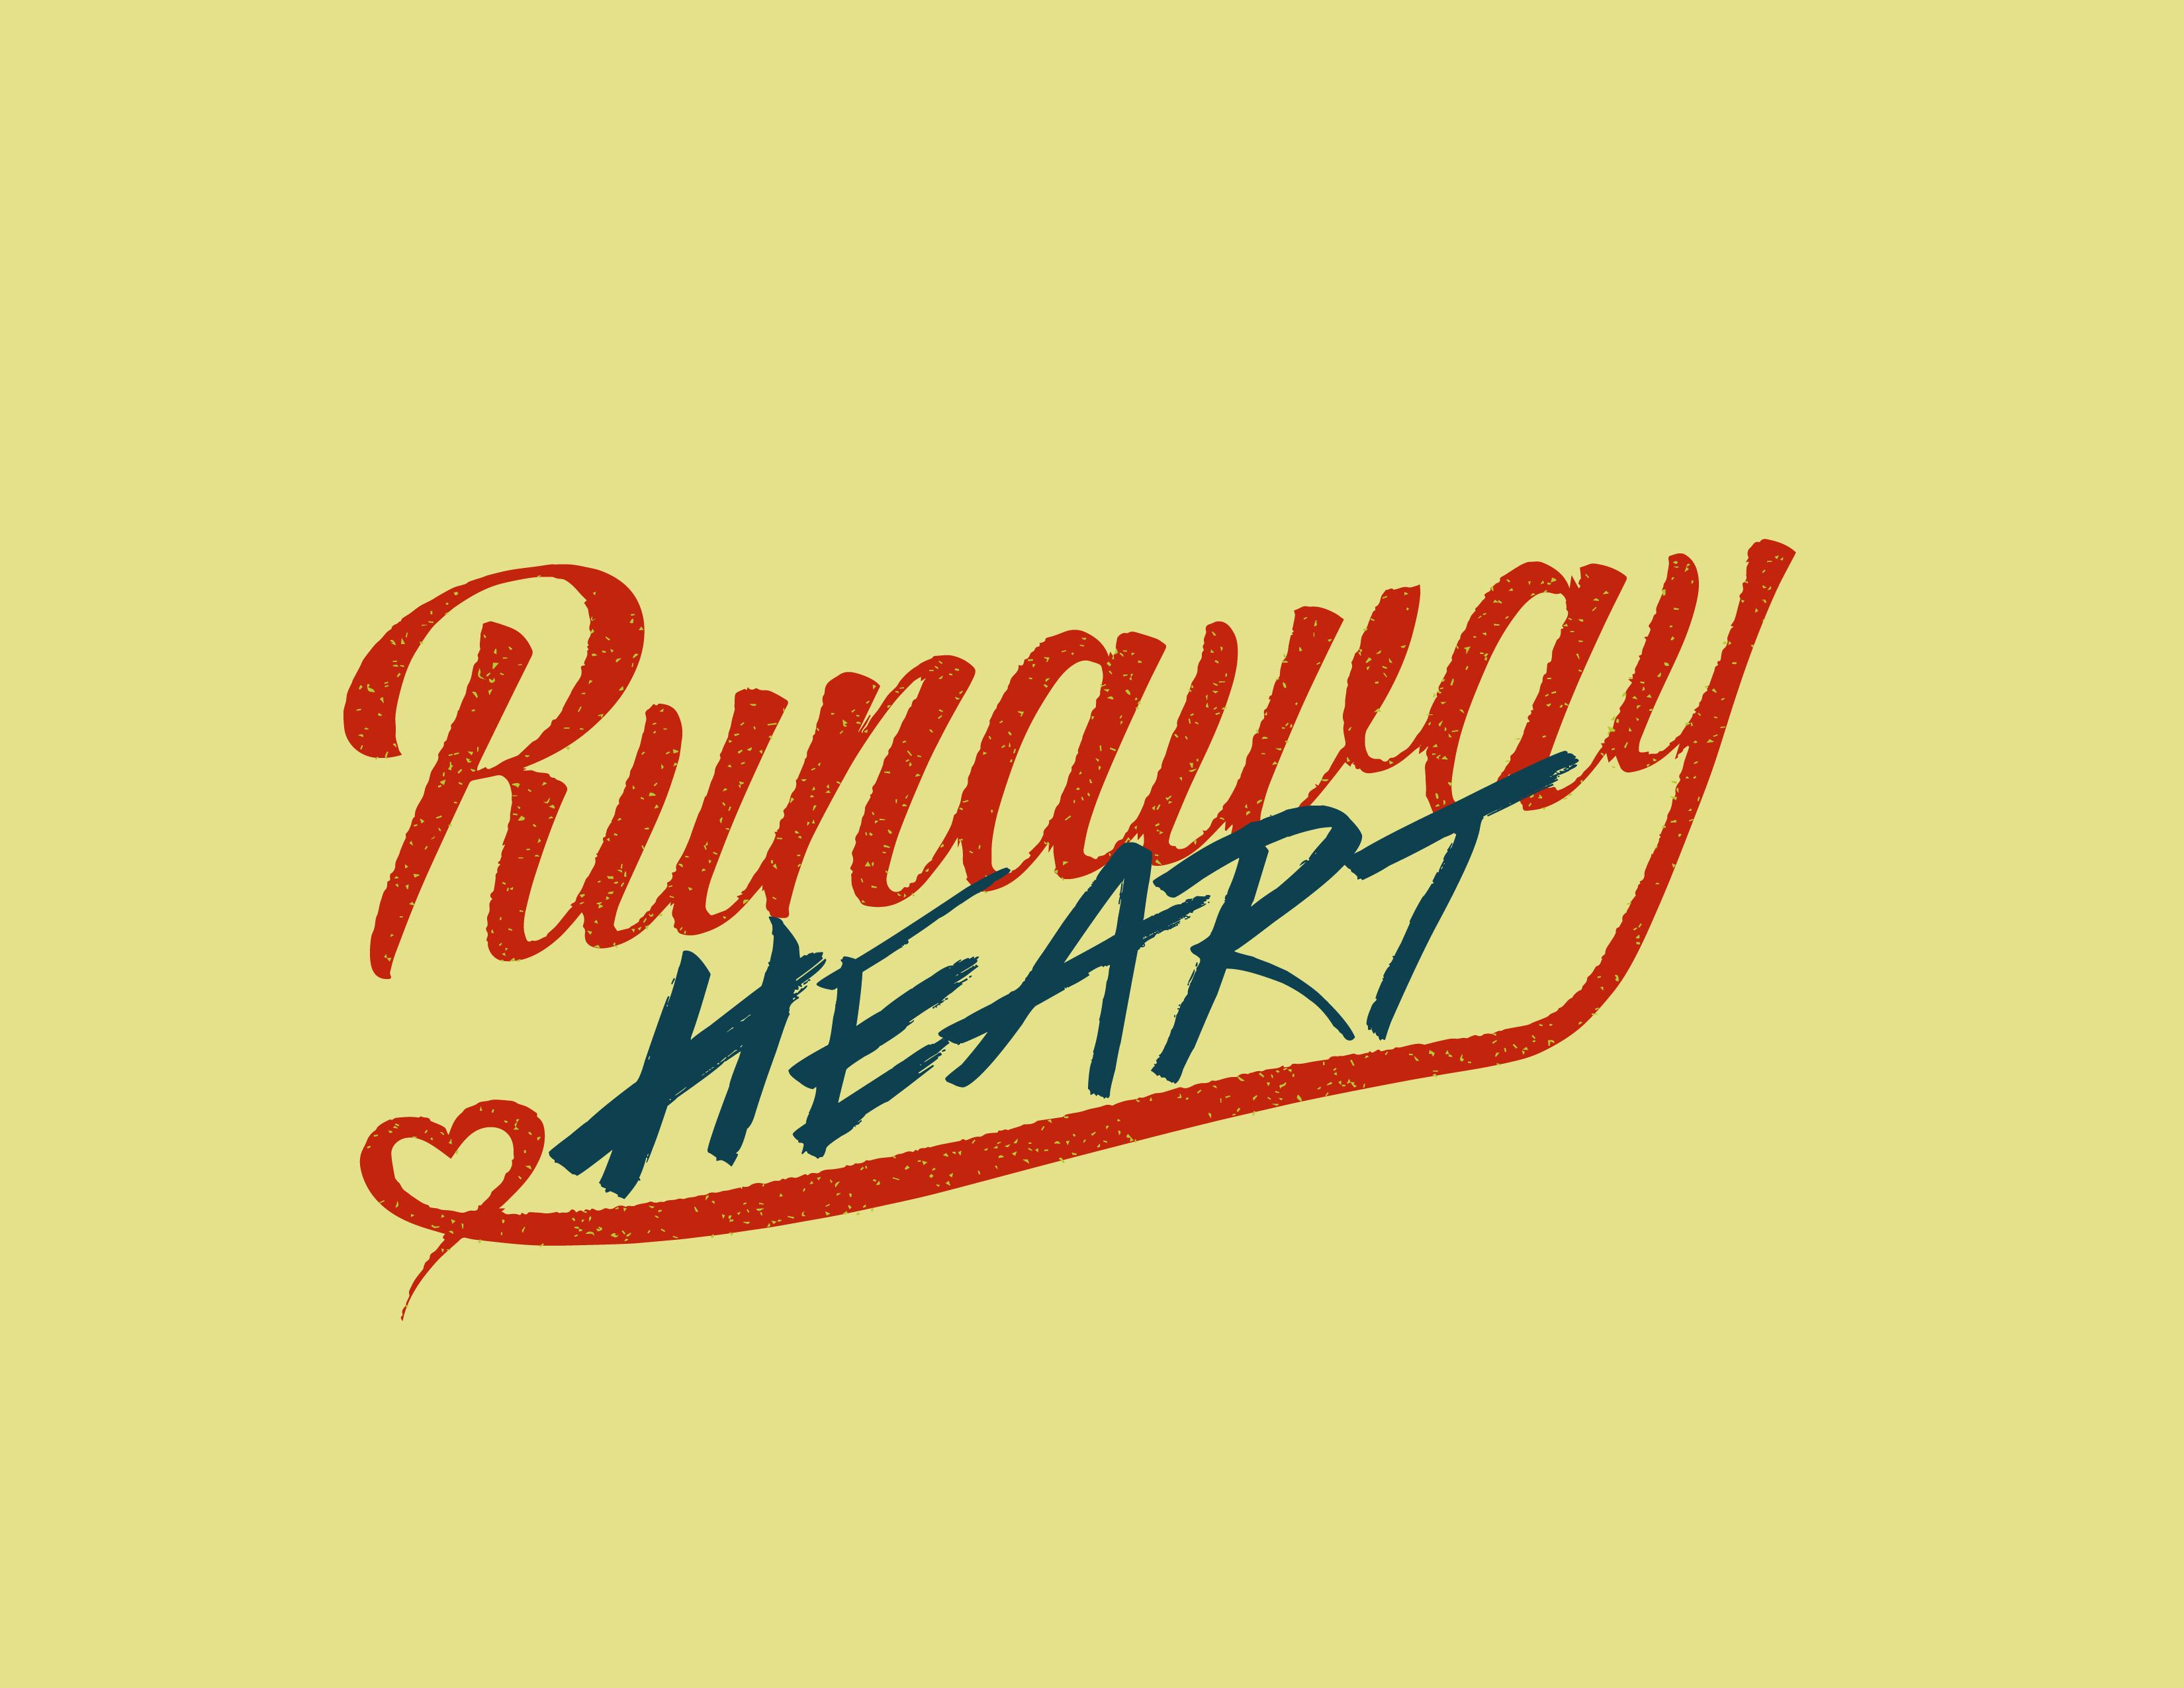 Runaway Heart - image 5 - student project